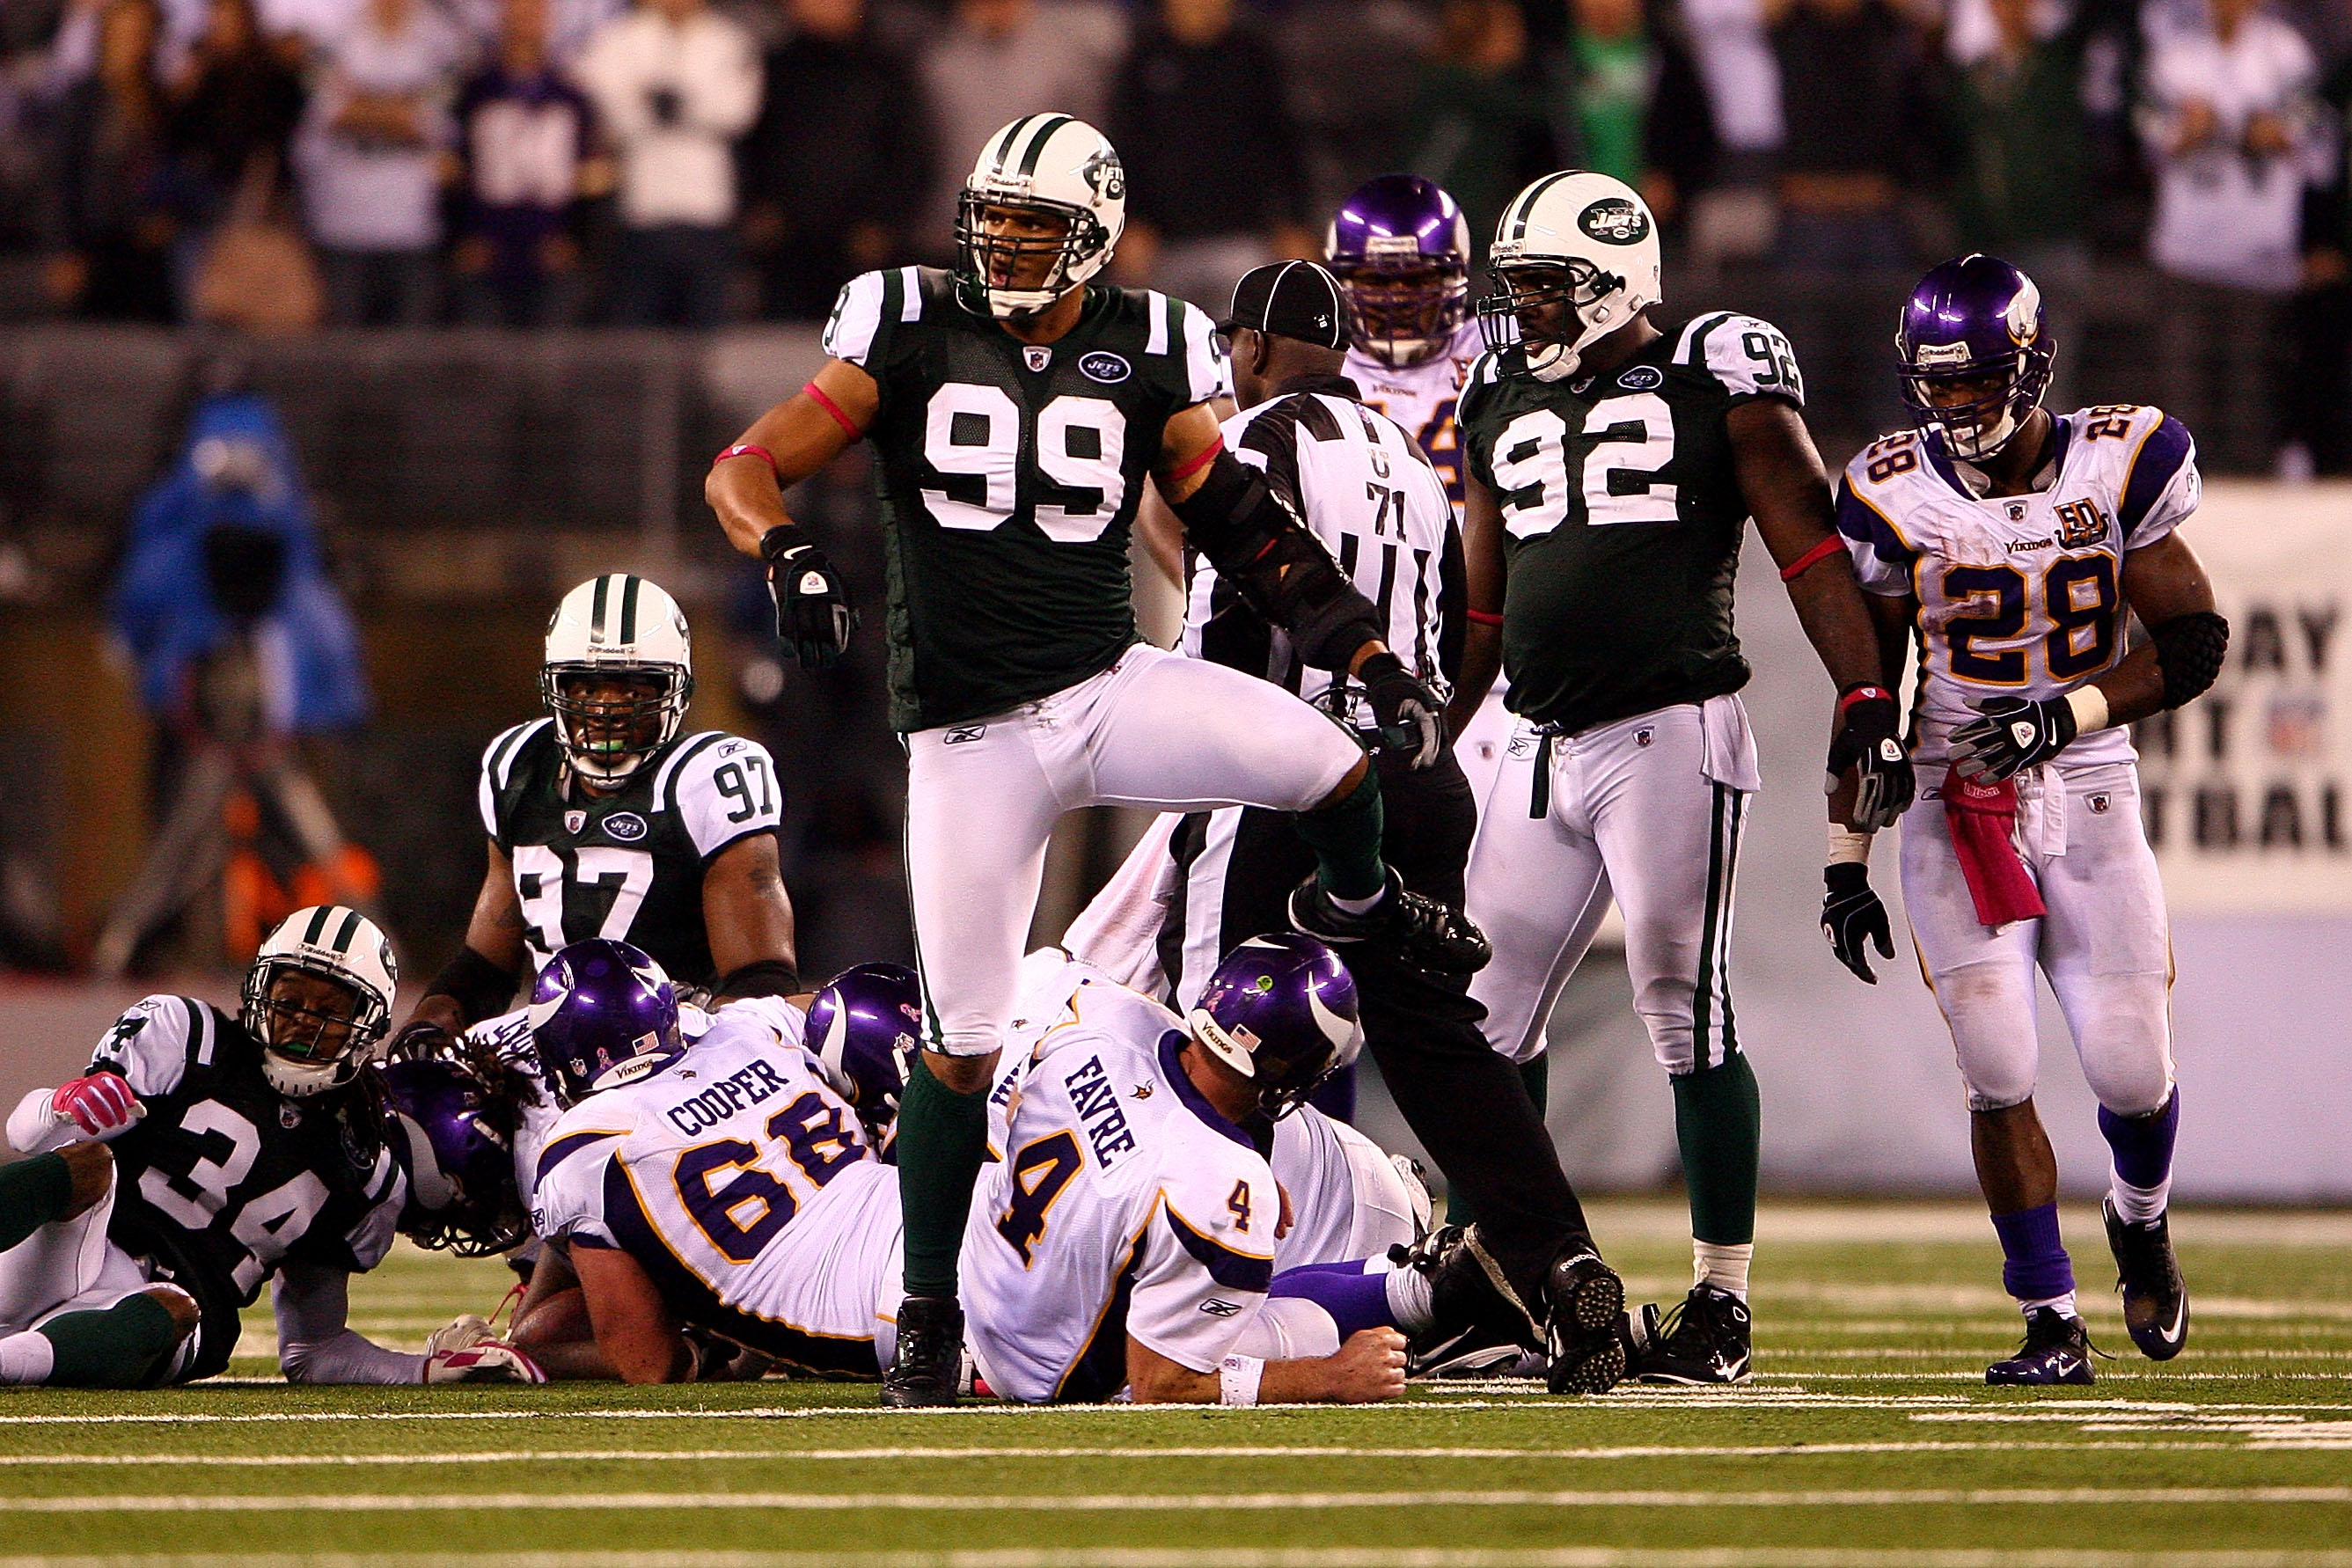 EAST RUTHERFORD, NJ - OCTOBER 11:  Jason Taylor #99 of the New York Jets reacts after he sacked Brett Favre #4 of the Minnesota Vikings at New Meadowlands Stadium on October 11, 2010 in East Rutherford, New Jersey.  (Photo by Andrew Burton/Getty Images)